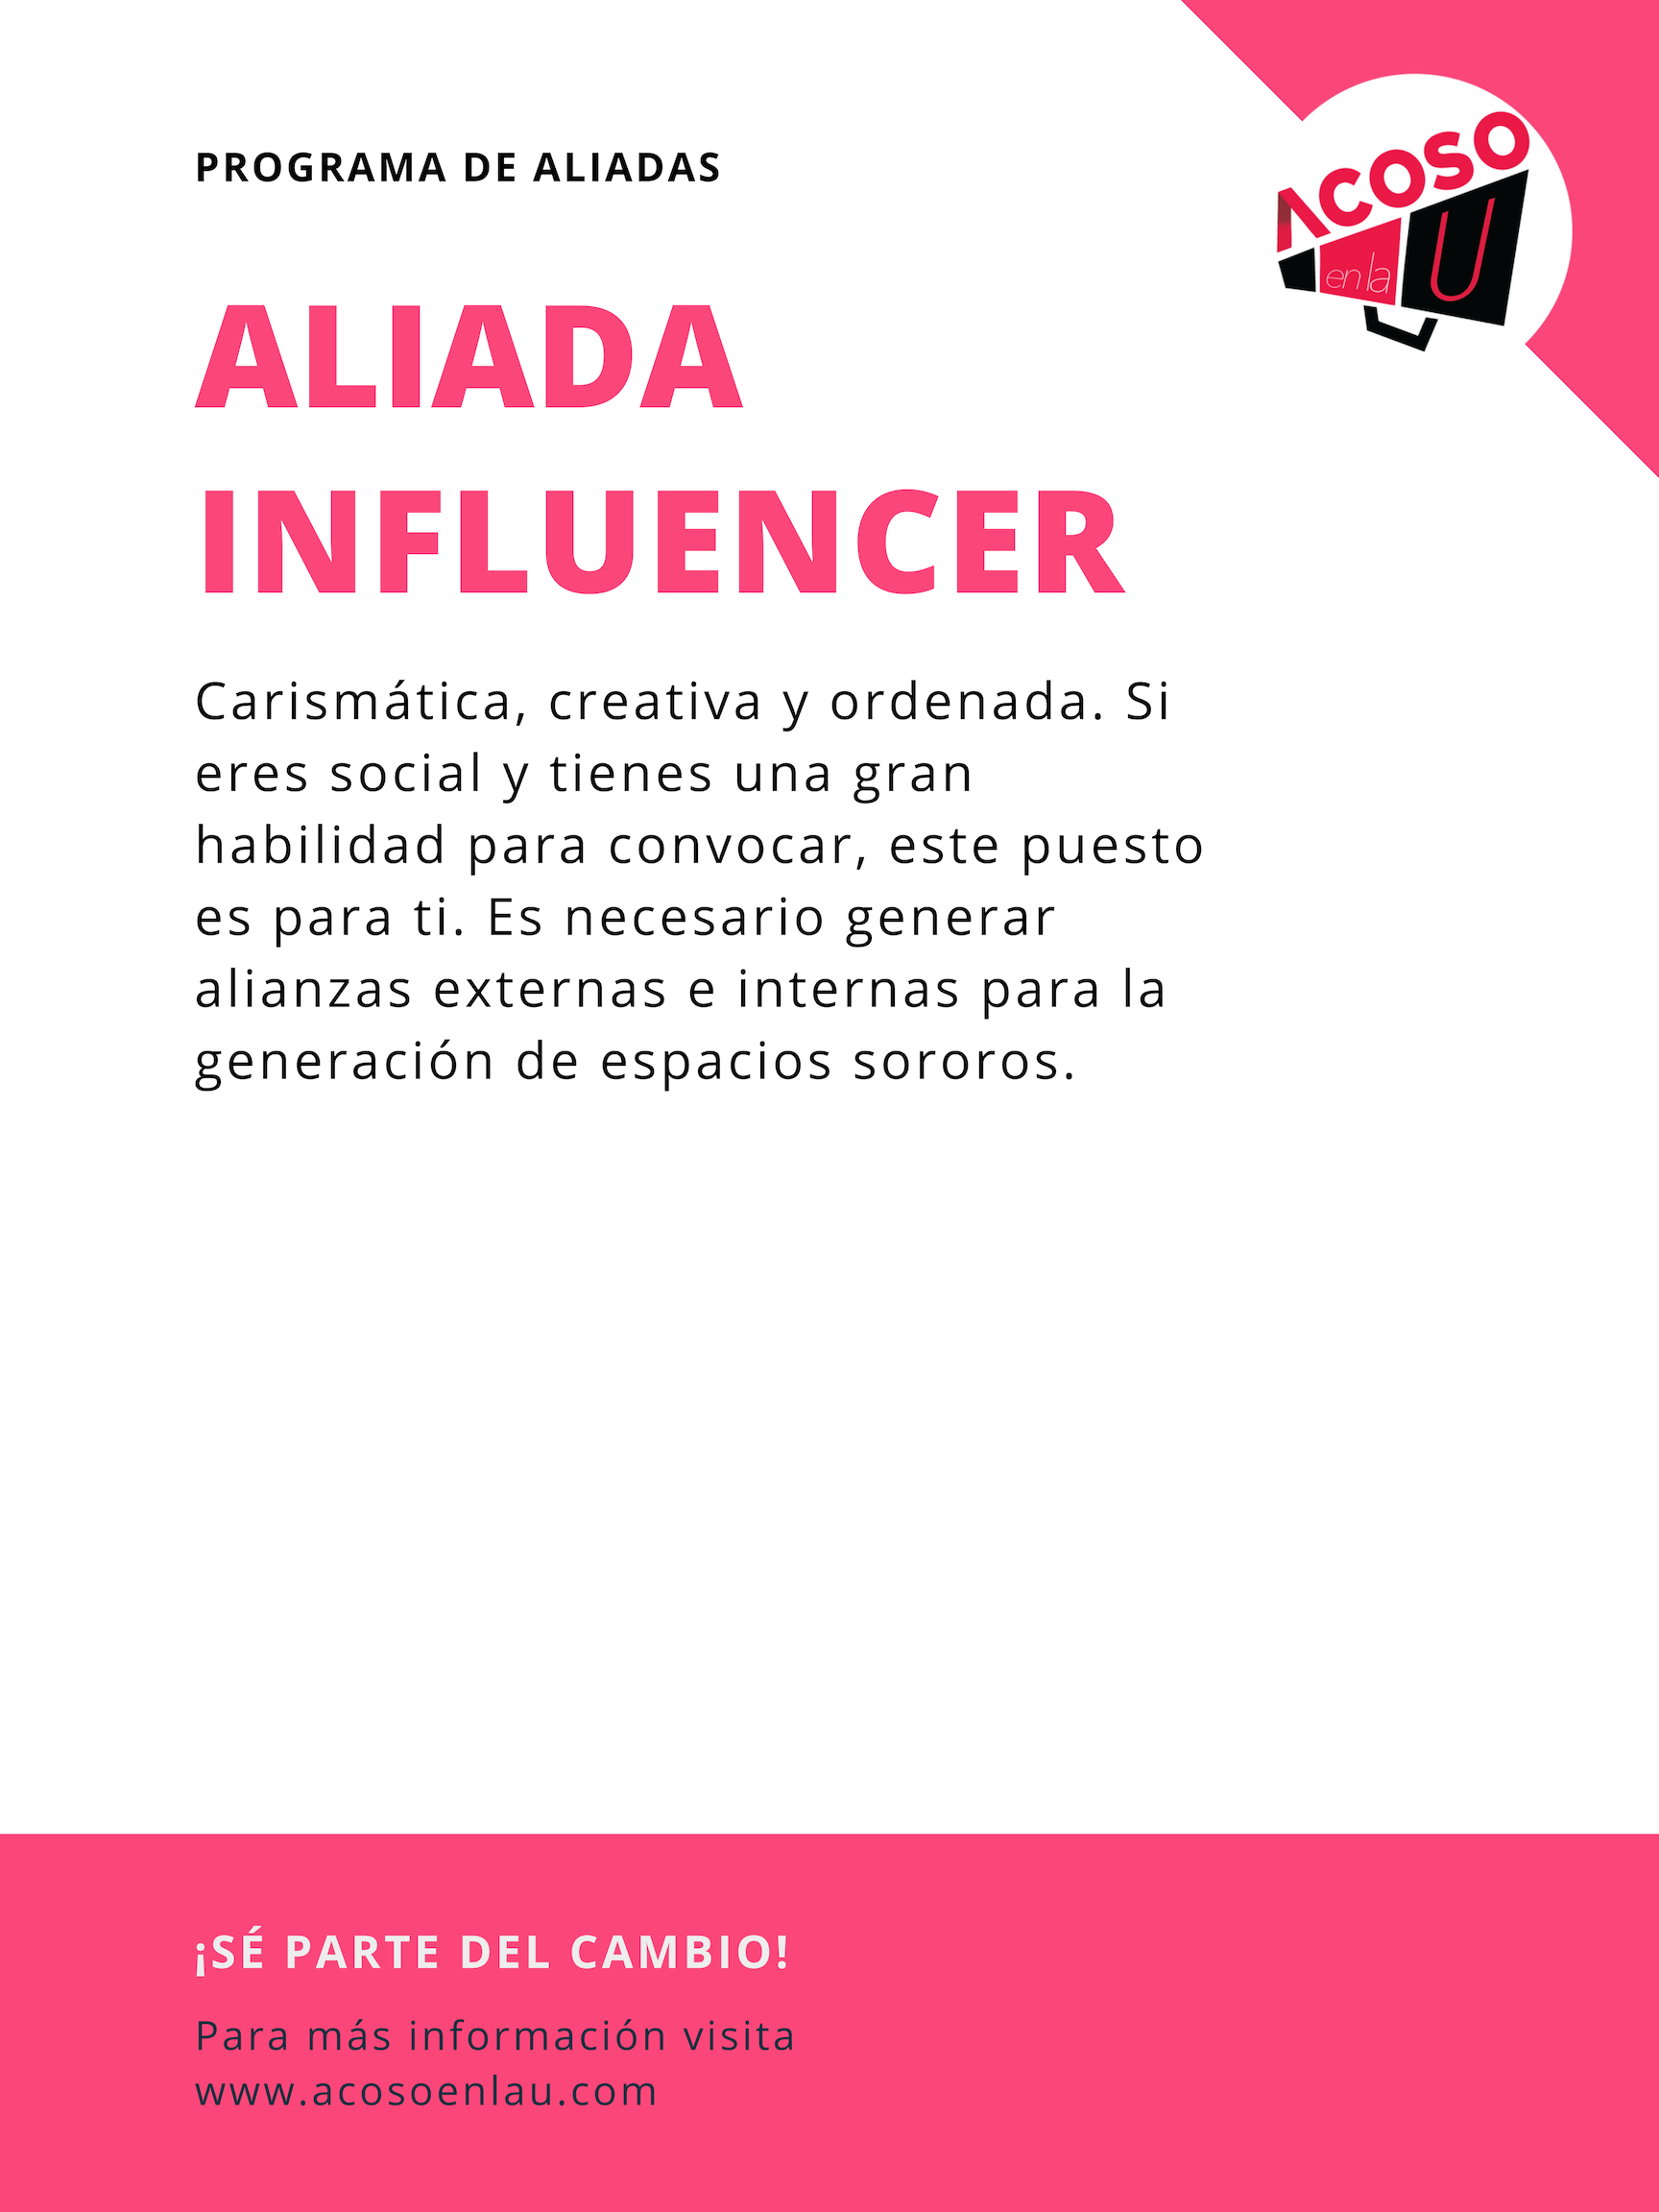 Red-de-Aliadas-Acoso-En-la-U-Hostigamiento-Sexual-Activista-influencer